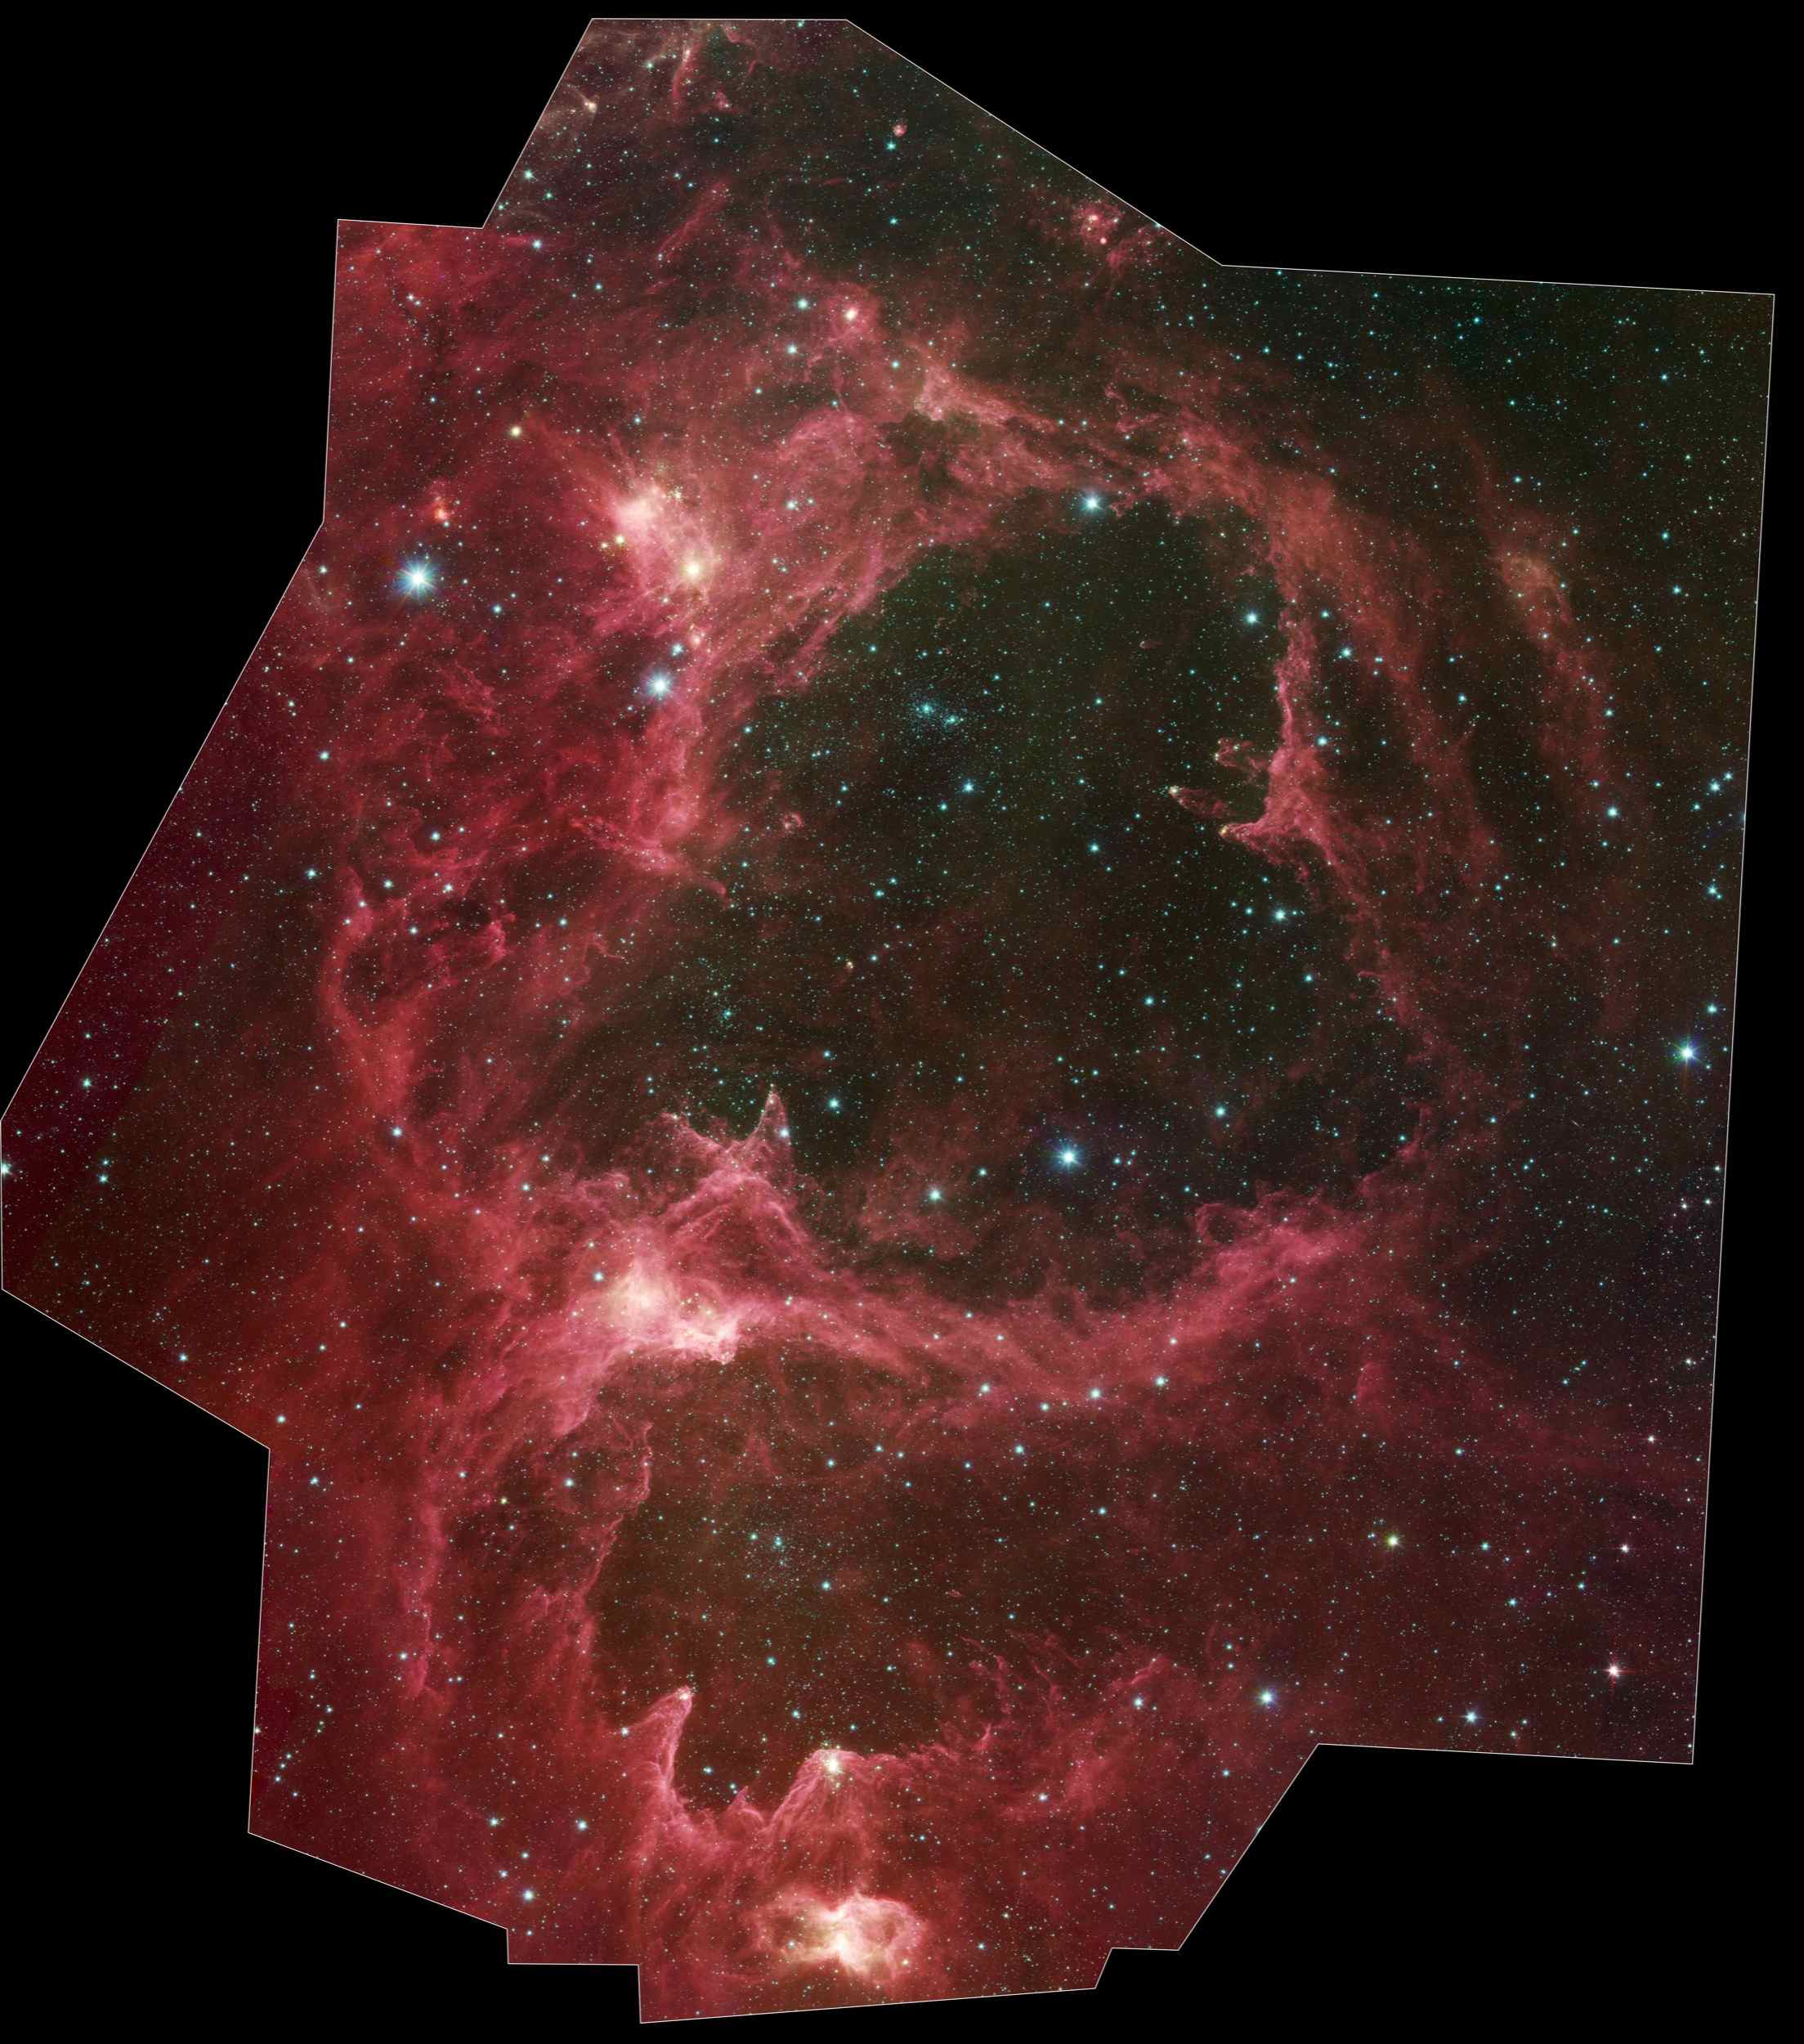 Generations of stars can be seen in this new infrared portrait from NASA's Spitzer Space Telescope. In this wispy star-forming region, called W5, the oldest stars can be seen as blue dots in the centers of the two hollow cavities.